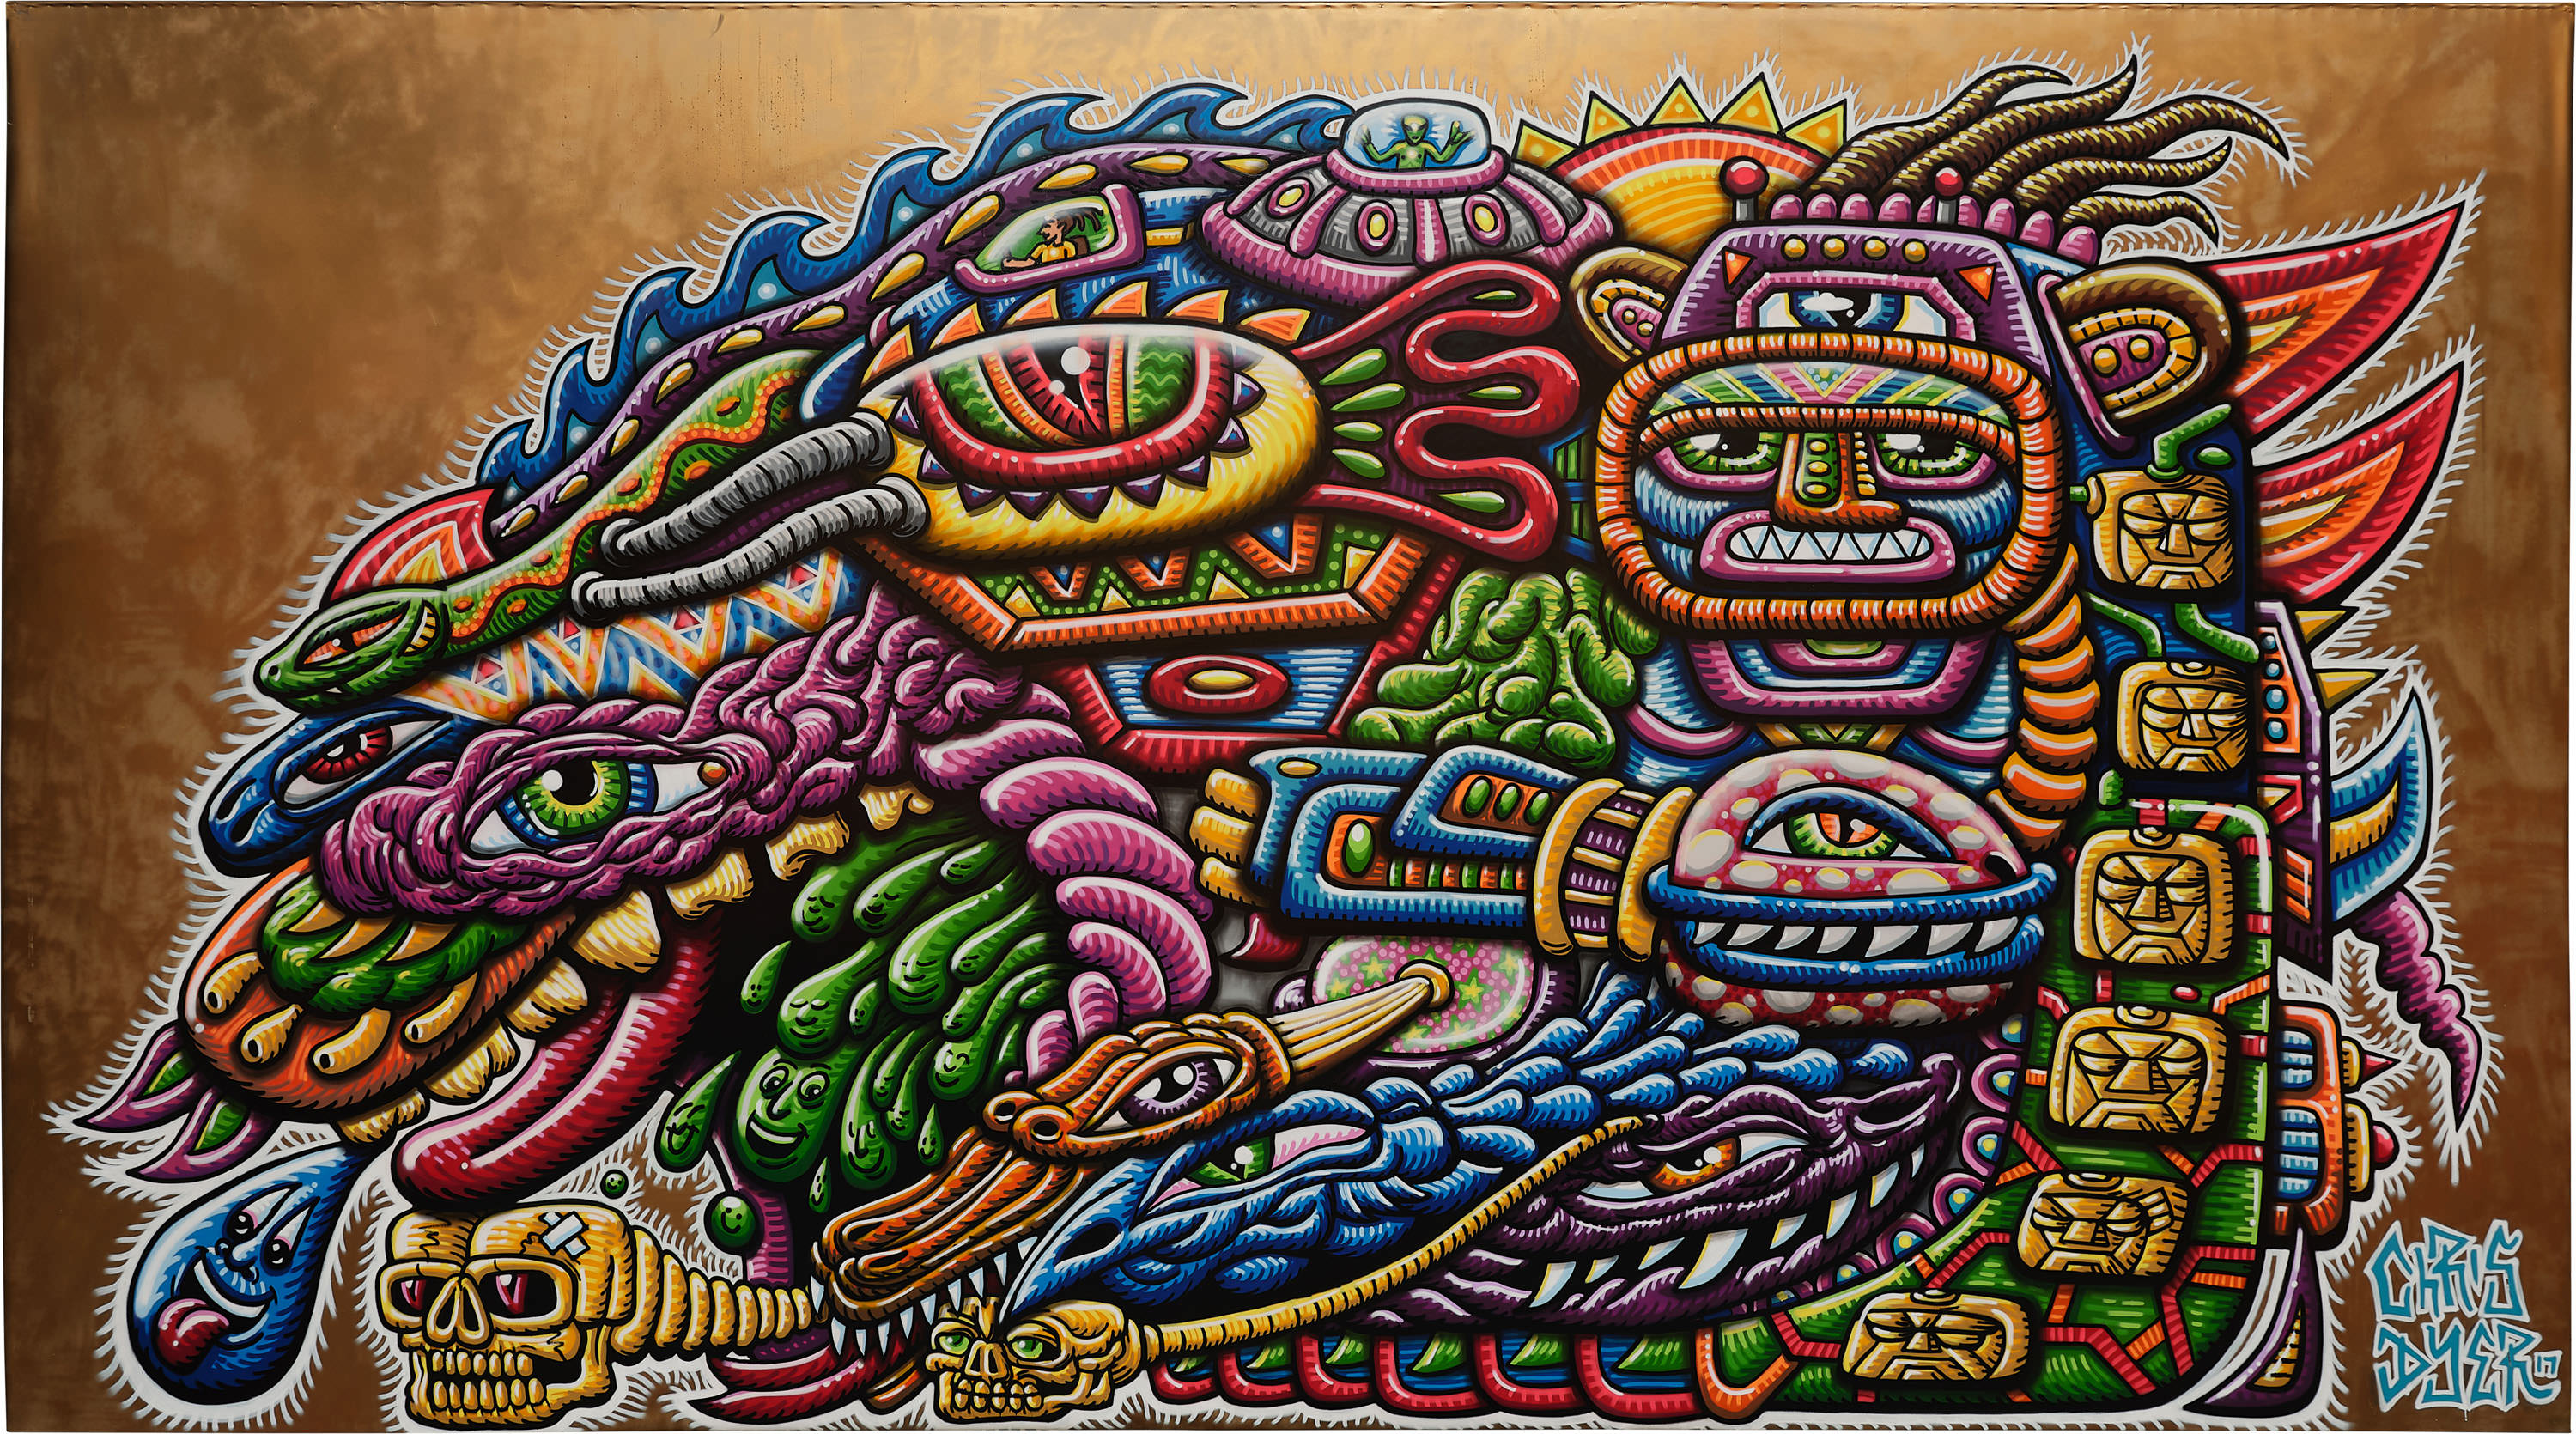 Chris Dyer painting Shamanic journey Straat international street art museum